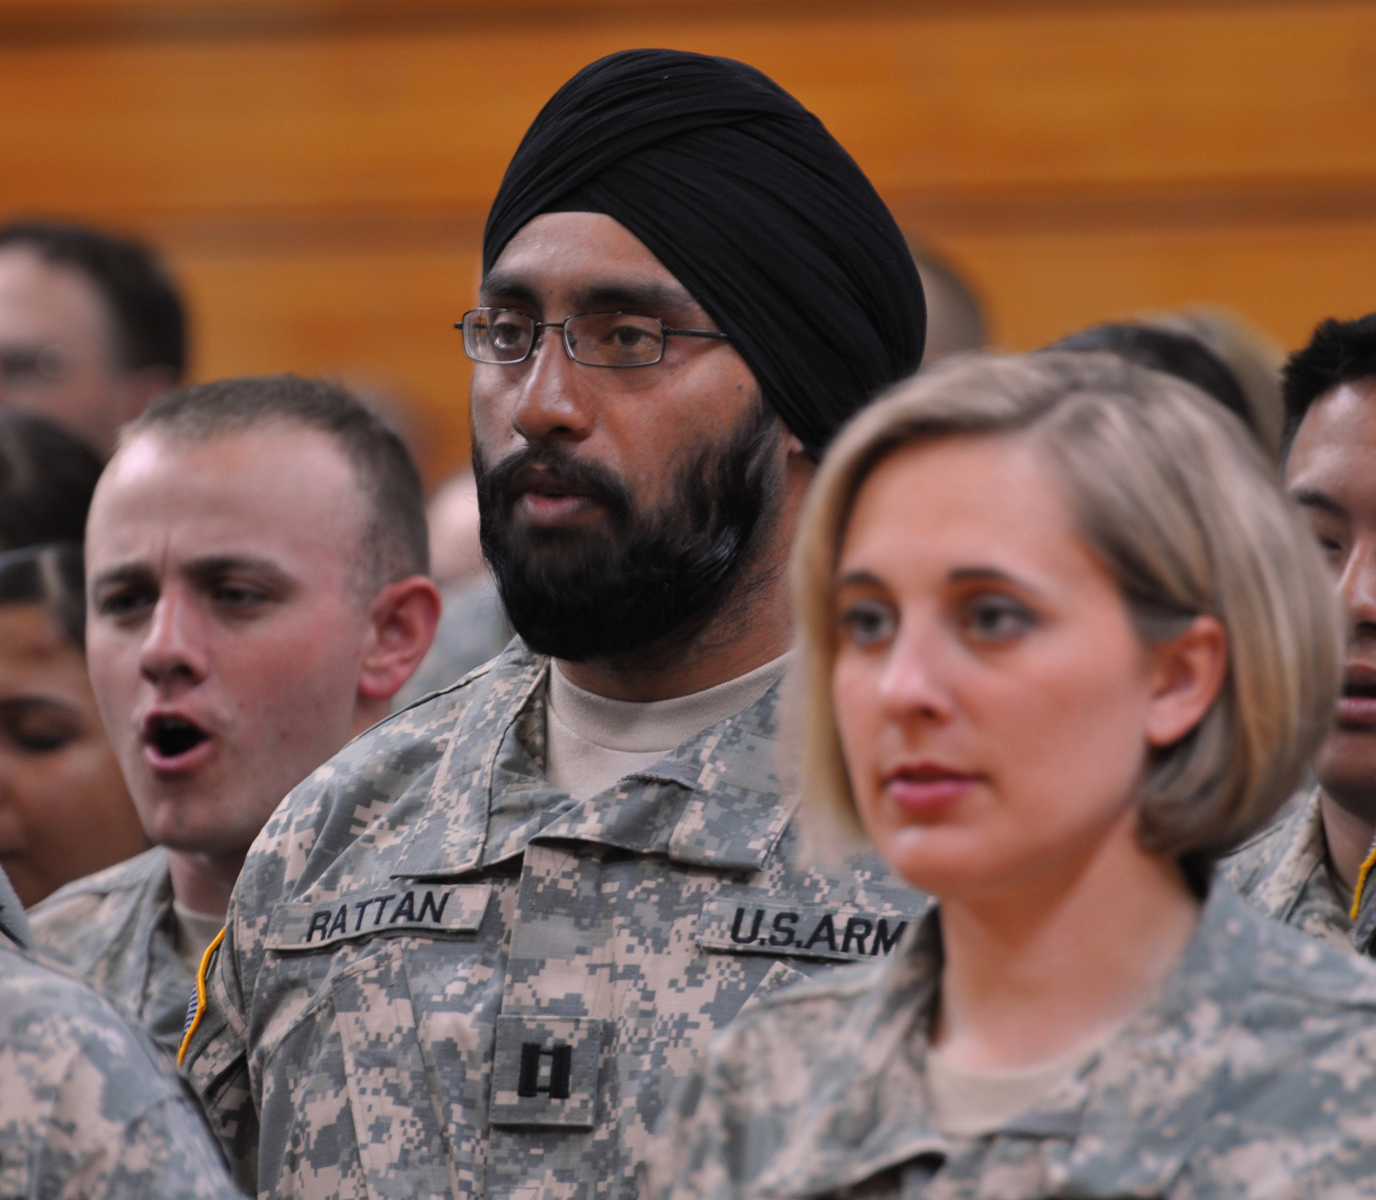 New Air Force Dress Code Enables Sikhs, Muslims to Observe Their Faith